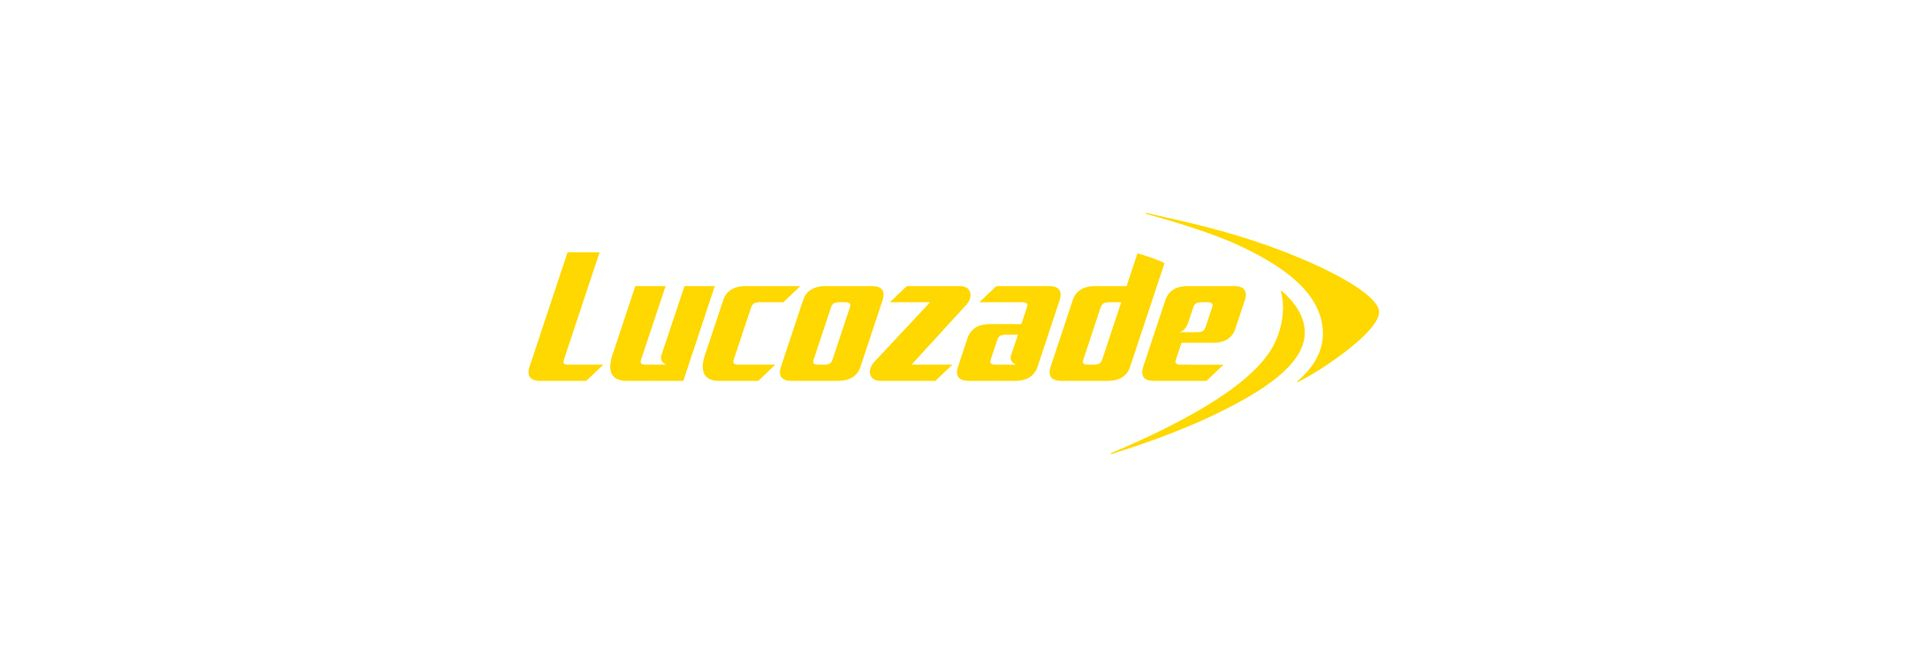 Lucozade drinks logo